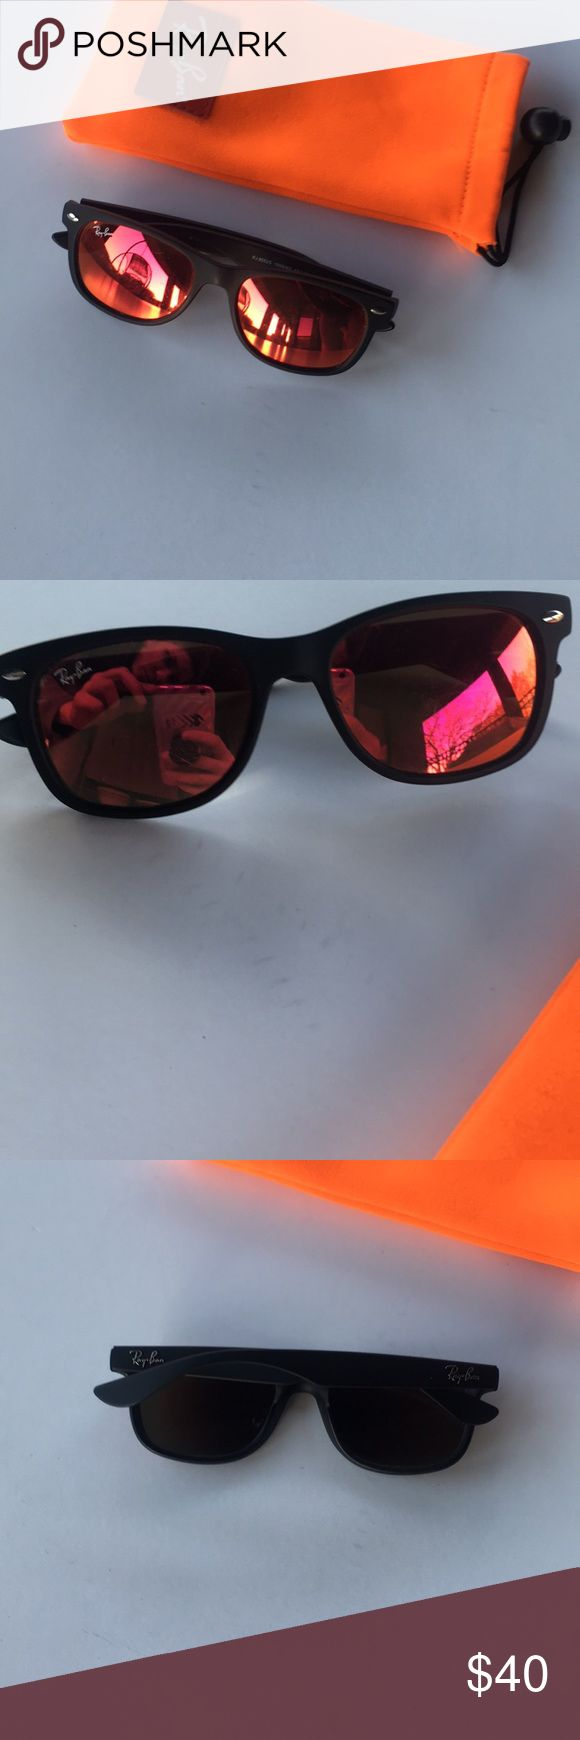 😎RAY-BAN red mirror wayfarer sunglasses Red mirror wayfarer sunglasses! Comes with soft neon orange glasses case! Has some barely noticeable scratches on front of lenses. Otherwise is great condition!! Make an offer or bundle to save!! 🤑 Ray-Ban Accessories Sunglasses